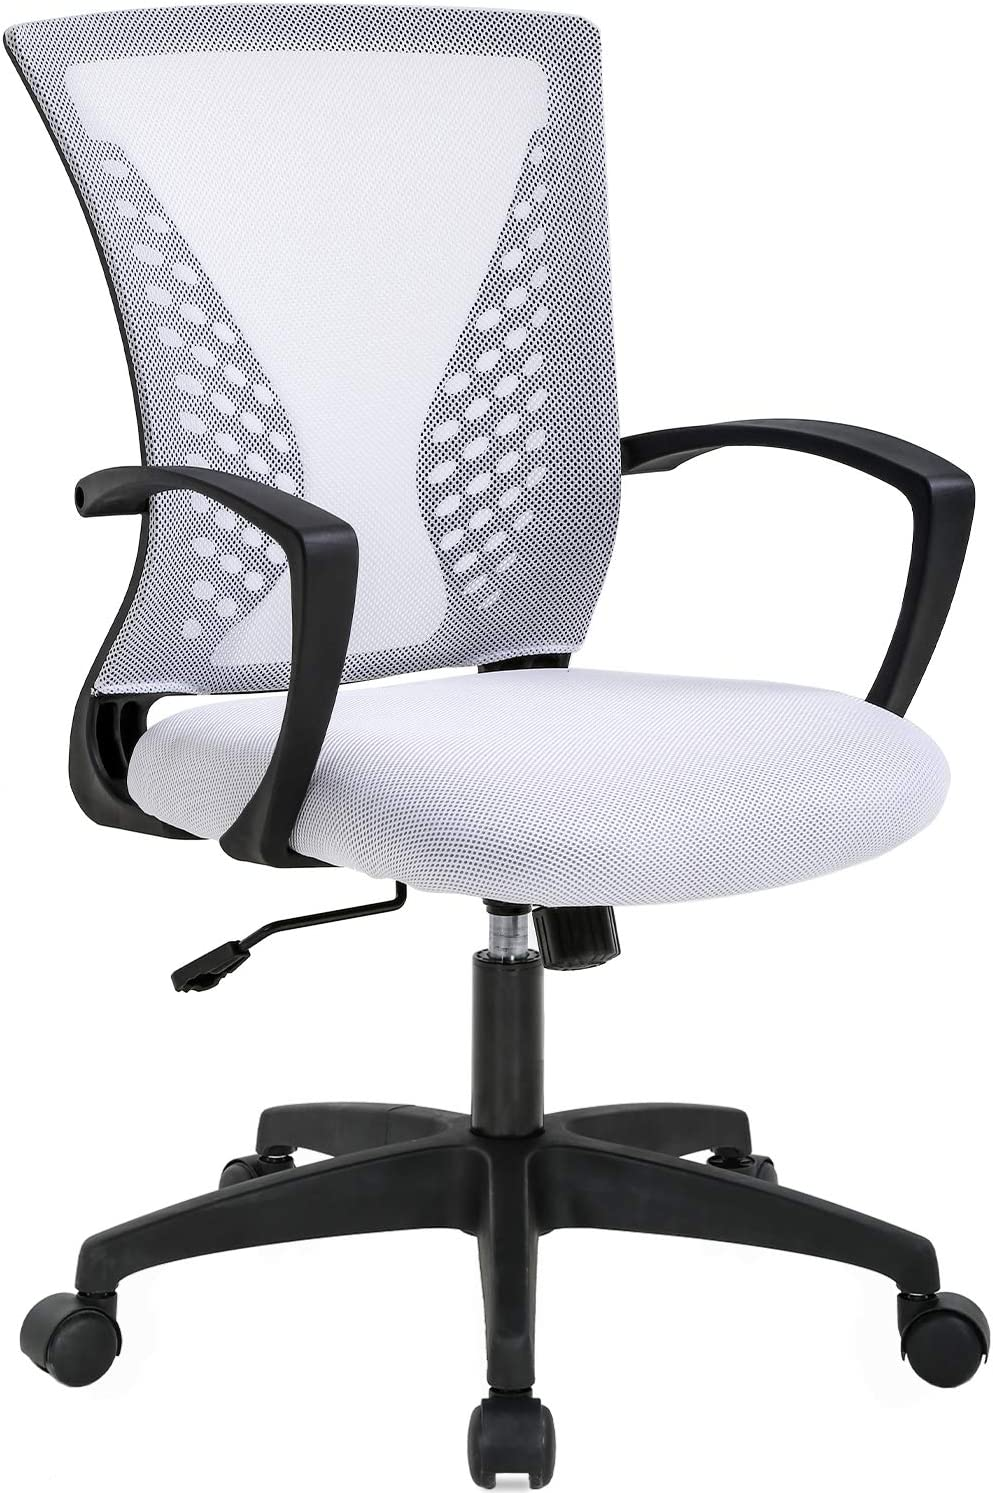 Mesh Office Chair Ergonomic Desk Chair Computer Chair with Lumbar Support Armrest Rolling Swivel Task Mid Back Adjustable Chair for Women Adults, White